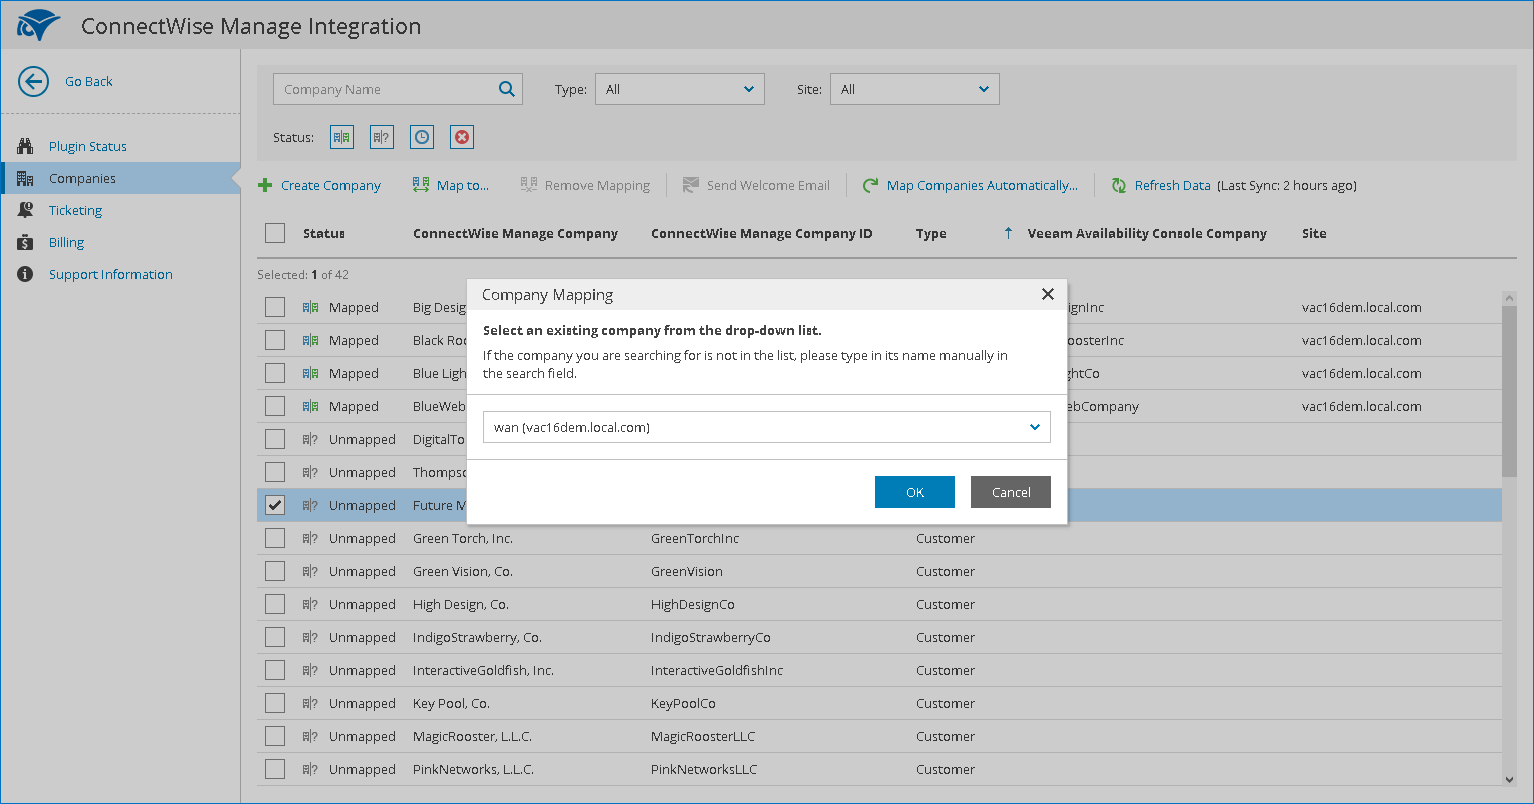 Mapping Companies - Veeam Availability Console Guide for